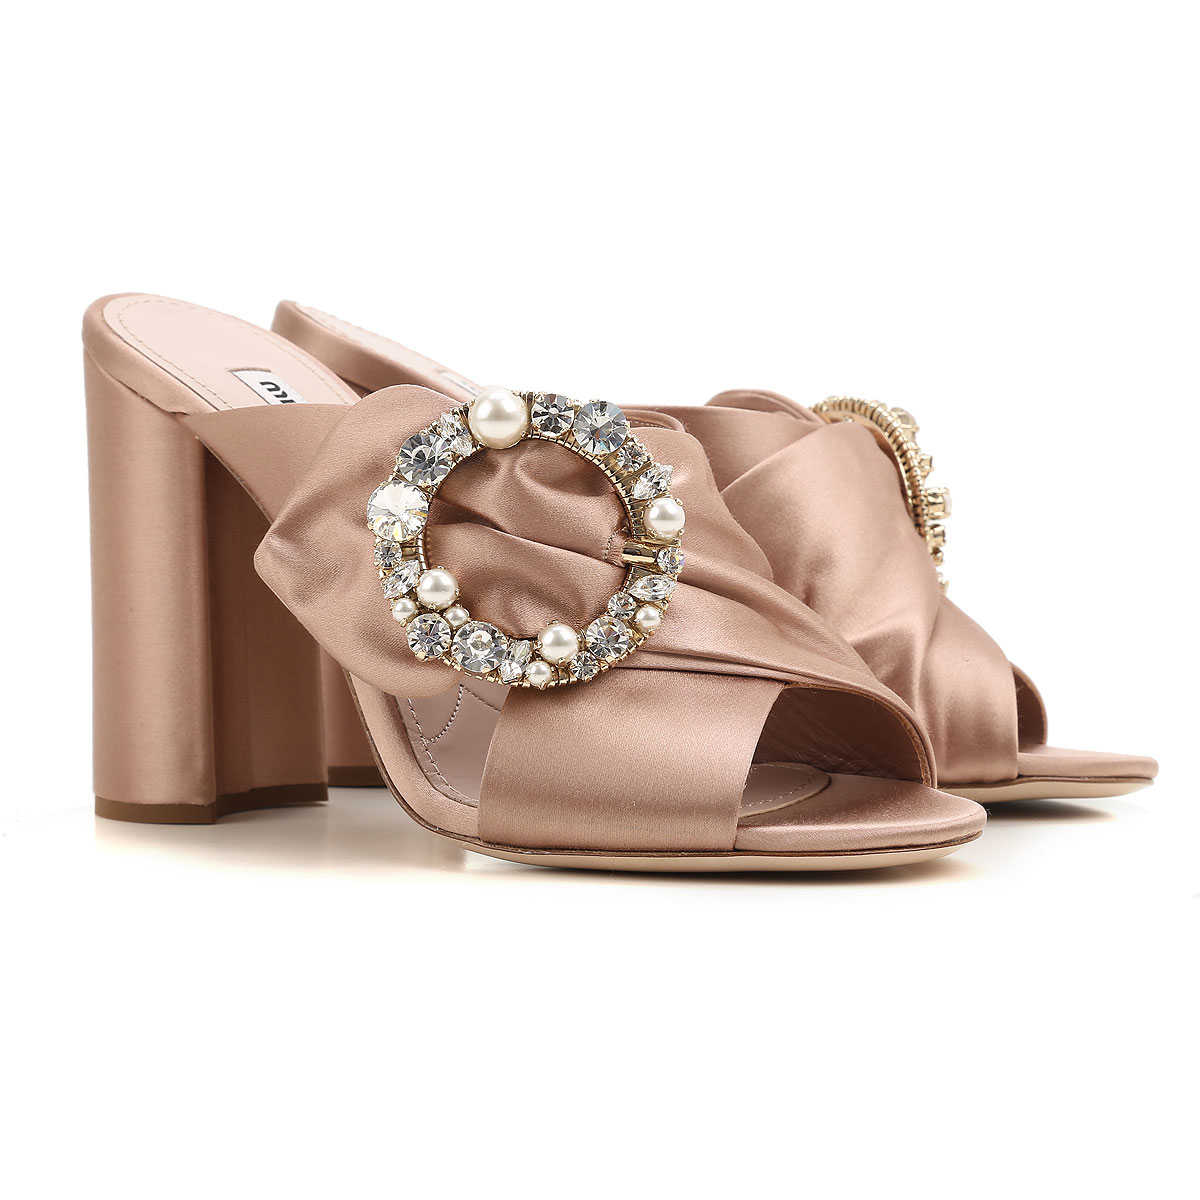 Miu Miu Sandals for Women On Sale in Outlet Nude SE - GOOFASH